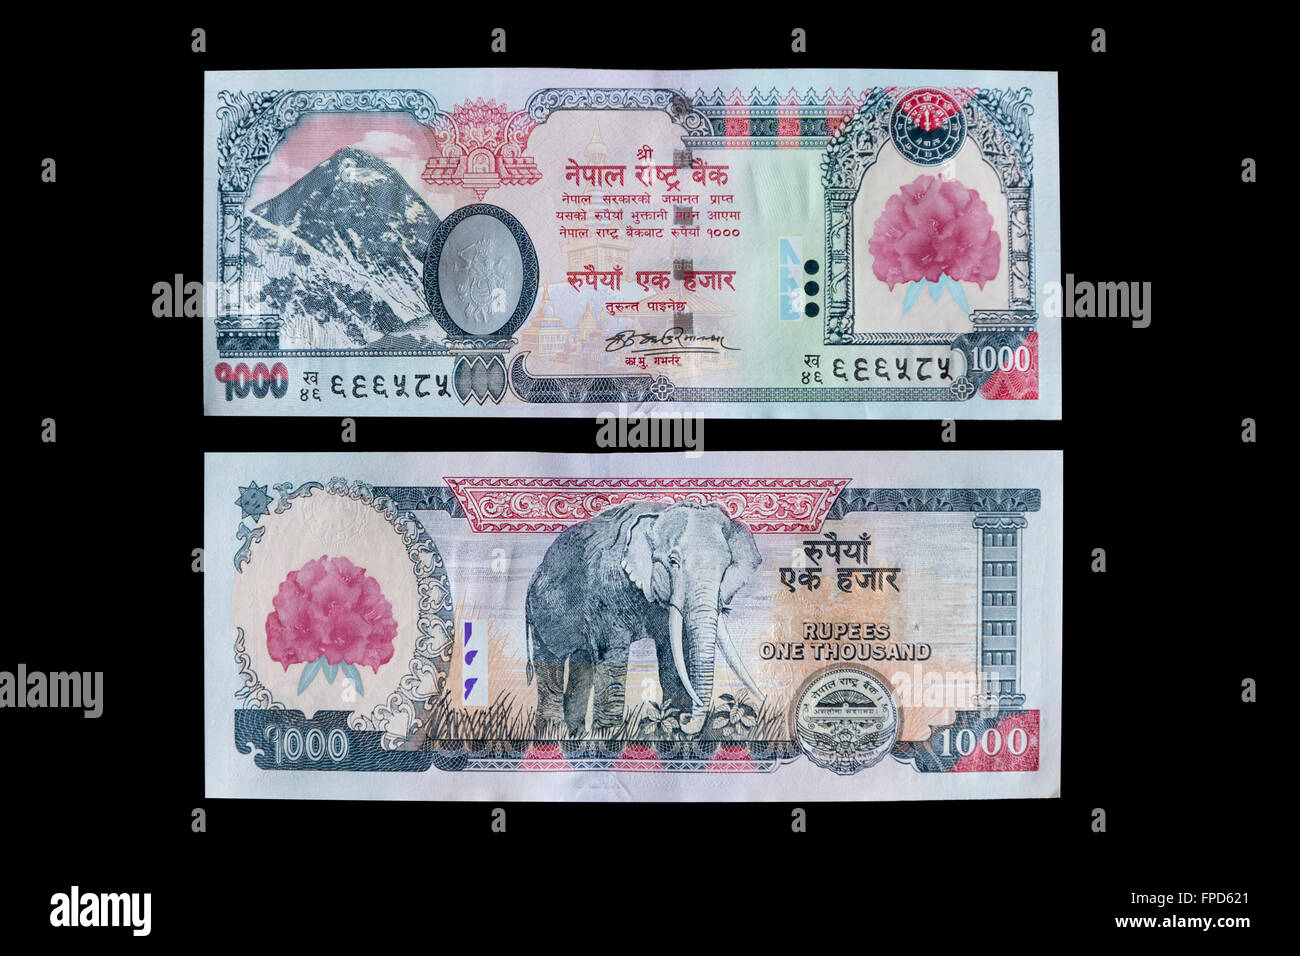 Asia nepalese nepali devanagari alphabet script front nobody stock nepal currency 1000 rupees front and back mt everest elephant altavistaventures Images